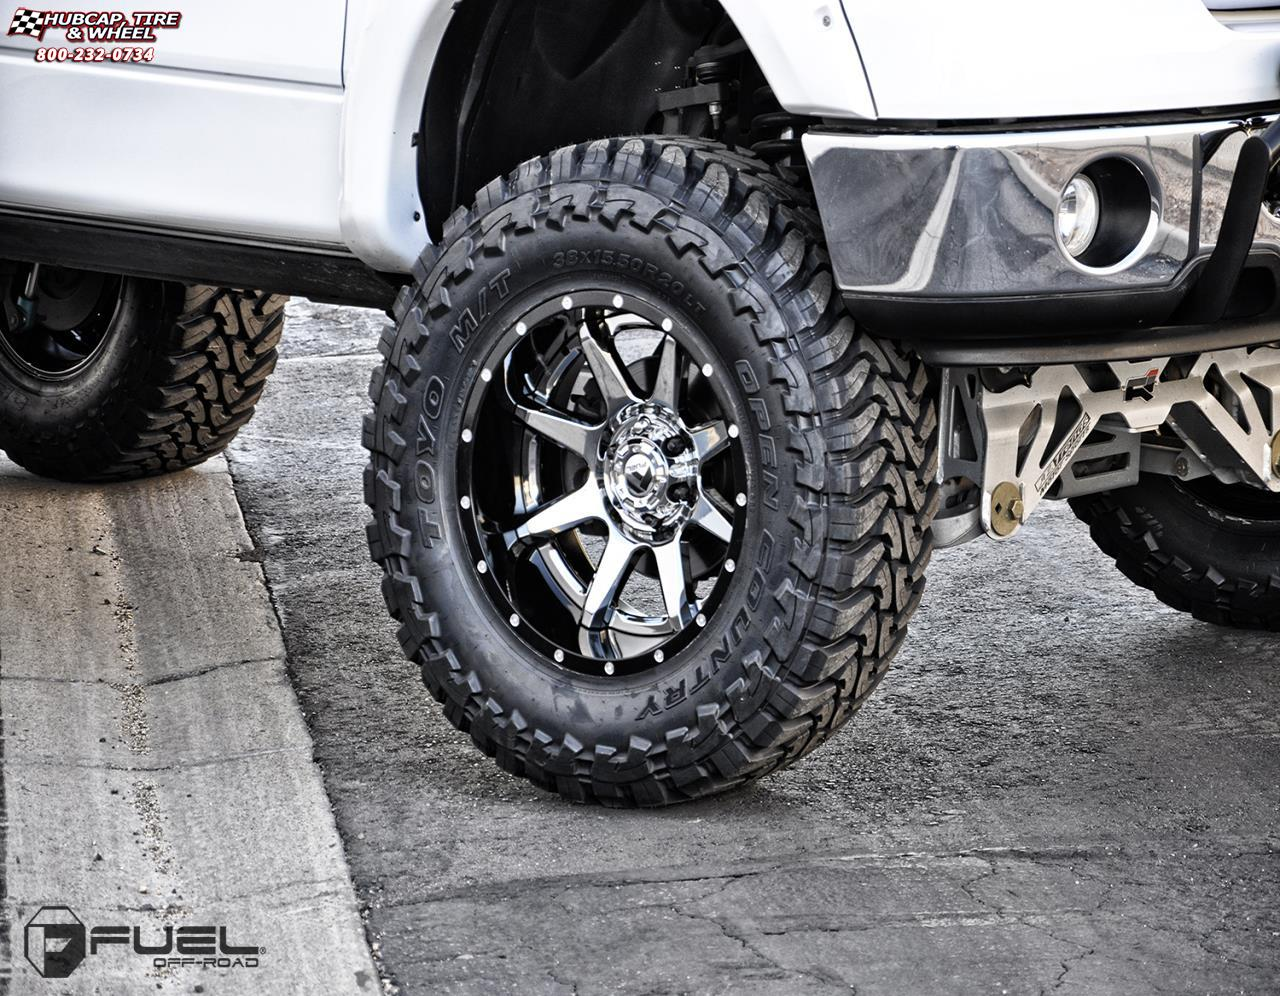 Ford F150 Bed Size >> Ford F-150 Fuel Rampage D237 Wheels PVD Chrome Center ...